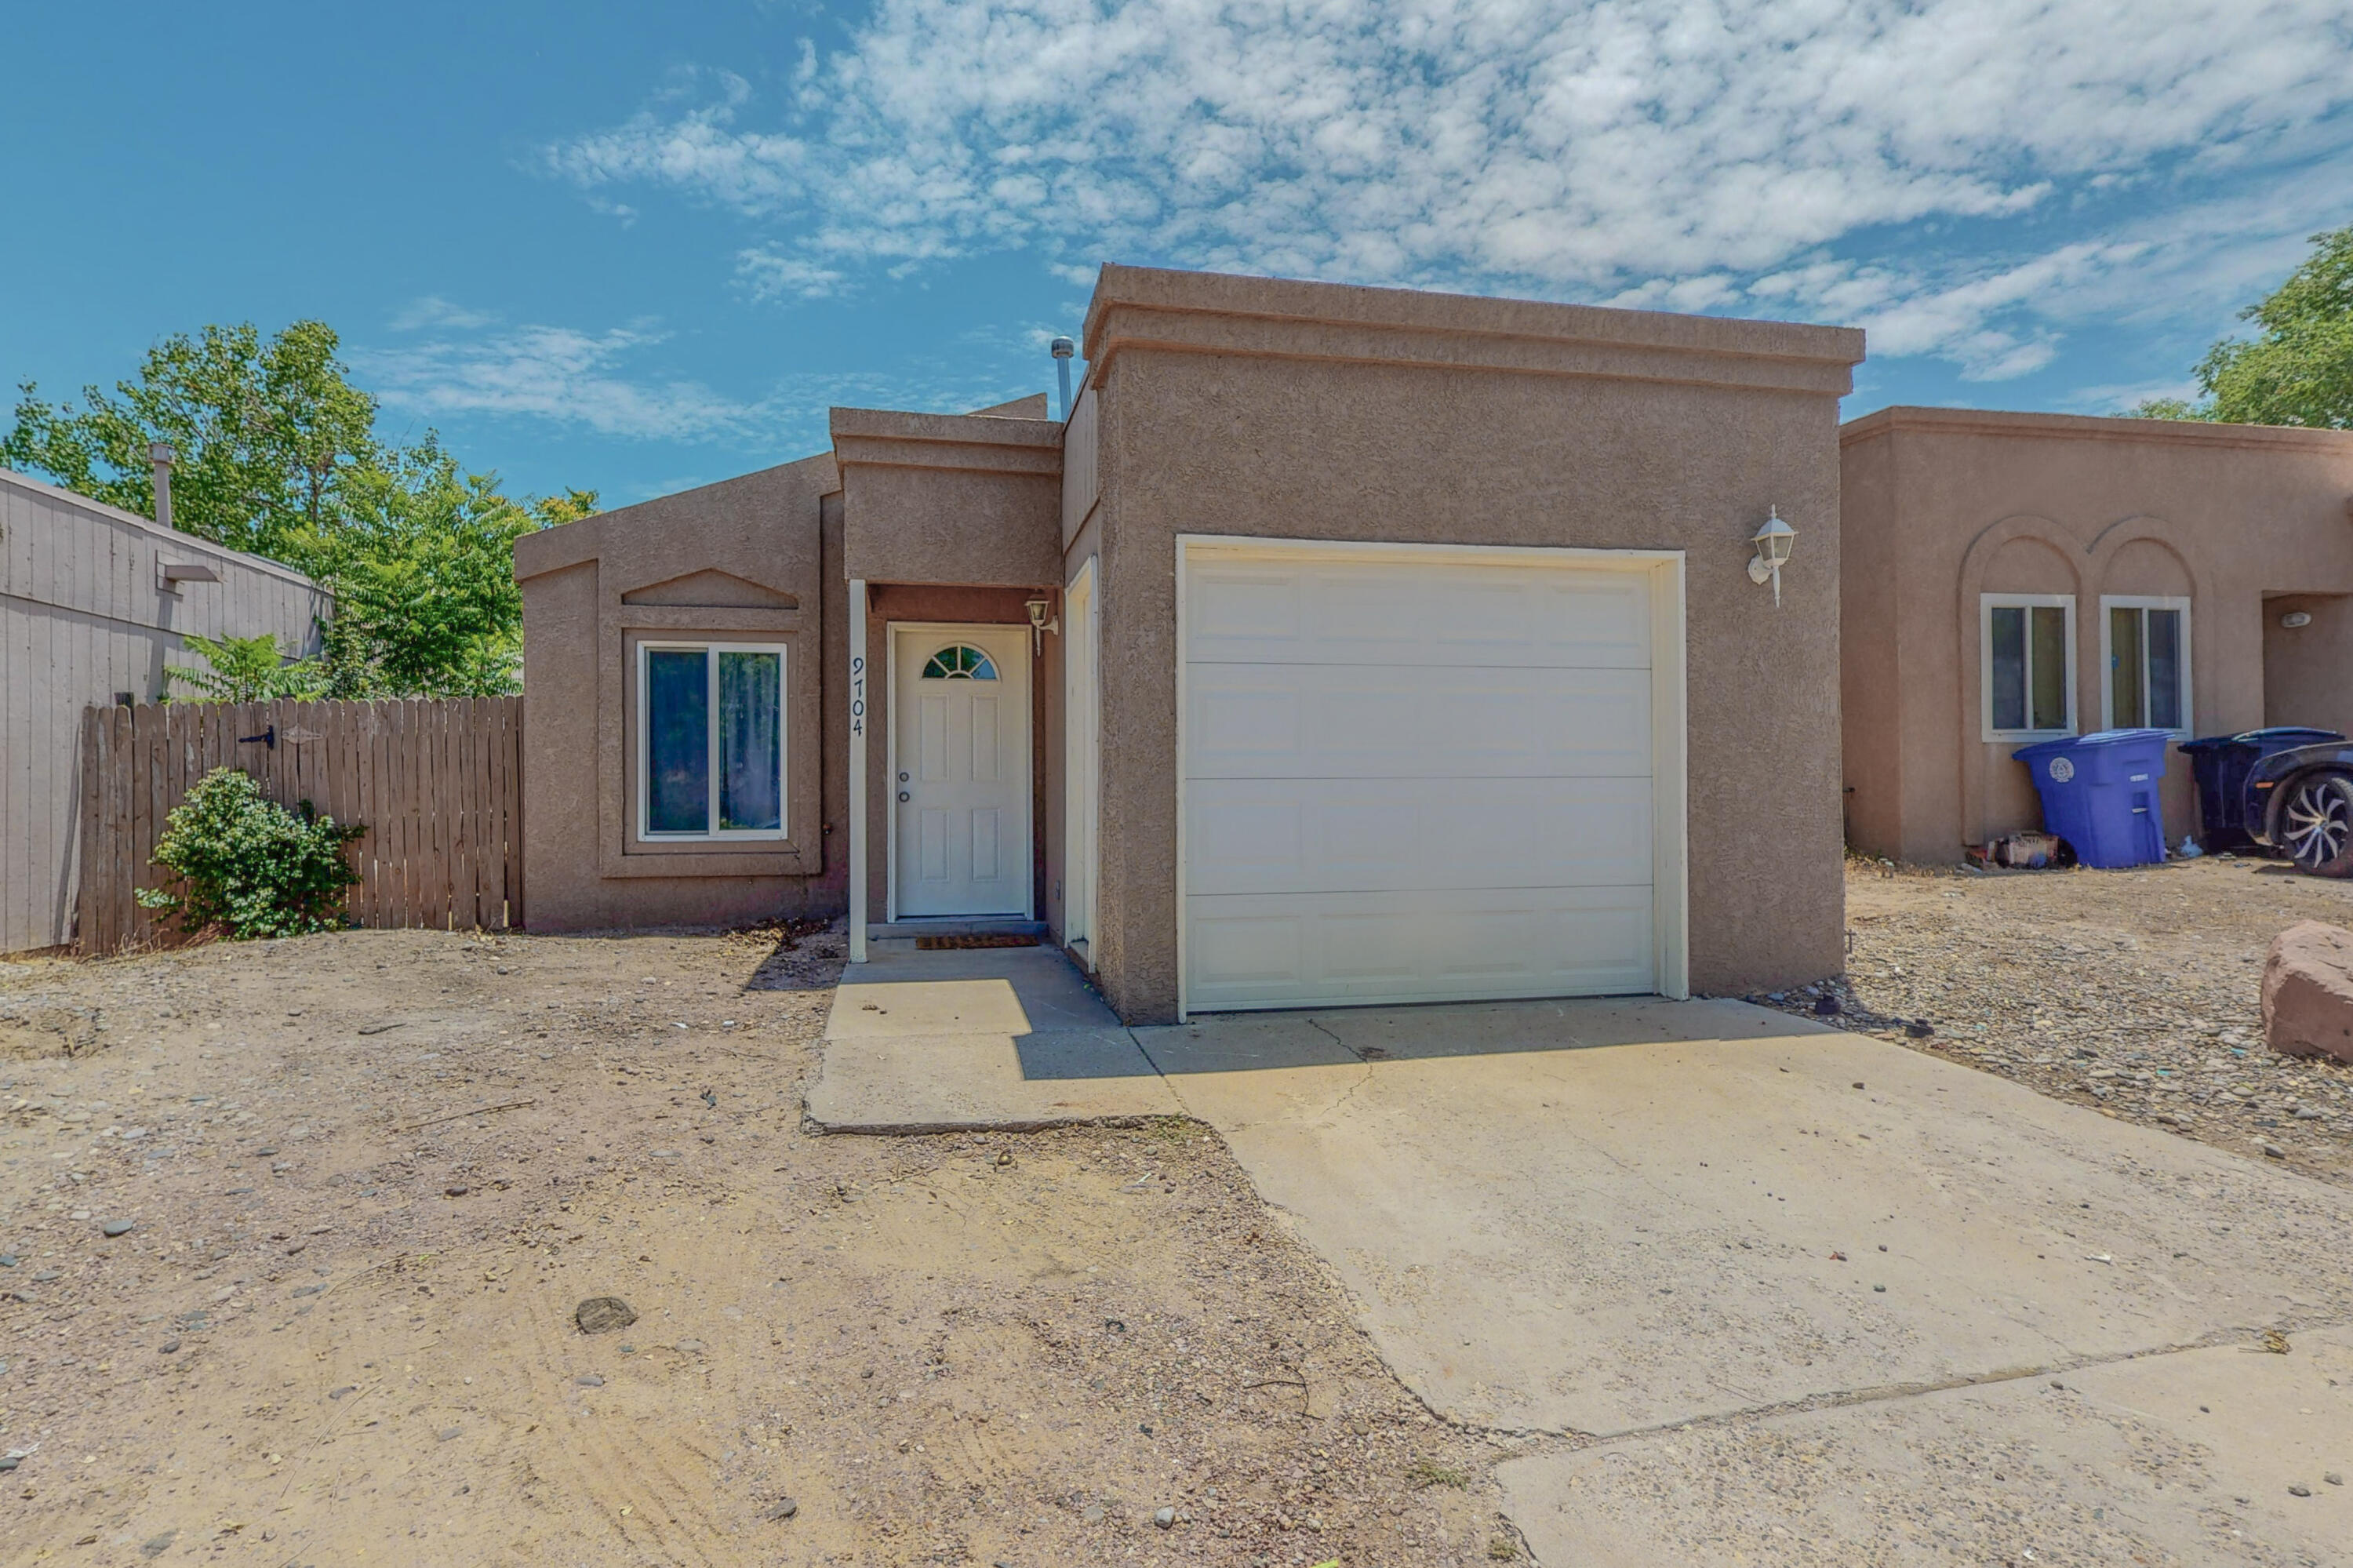 Two bedroom, one bath home.  New carpet in bedrooms, tile floors in main areas.  Washer, Dryer and Refrigerator will convey with purchase.  This one is move in ready!